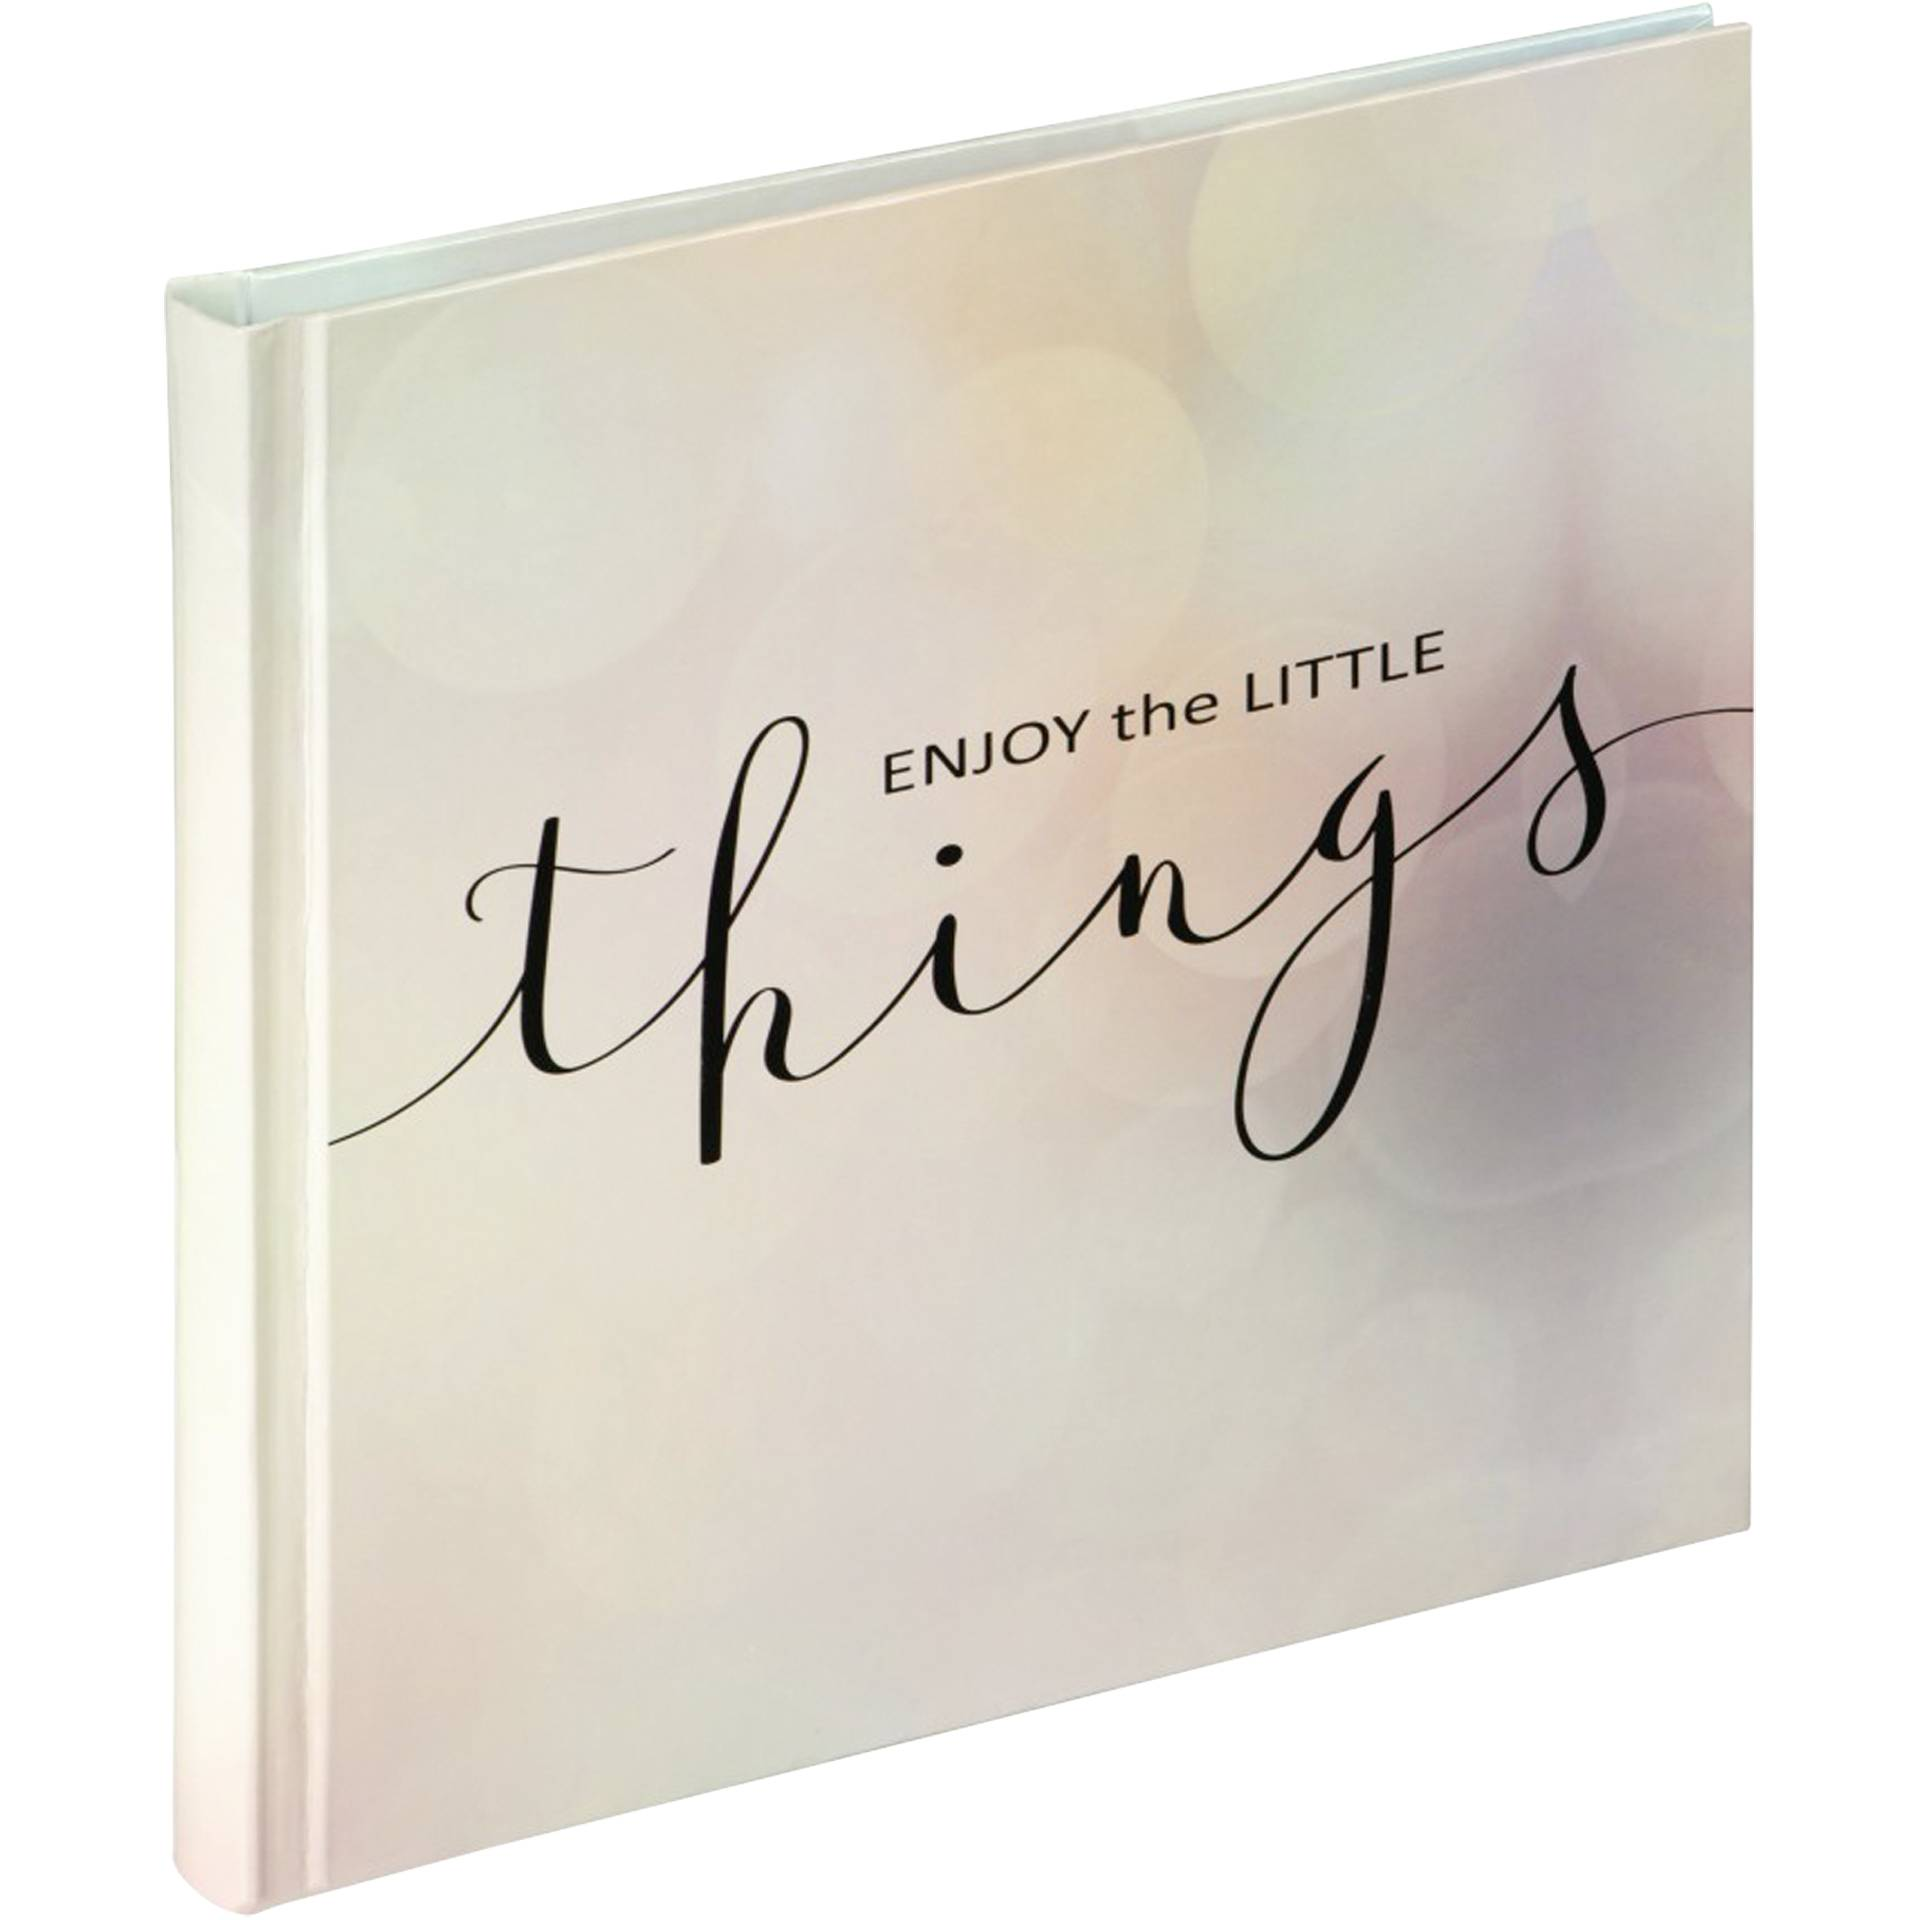 Hama Letterings Enjoy 18x18 - 30 white pages